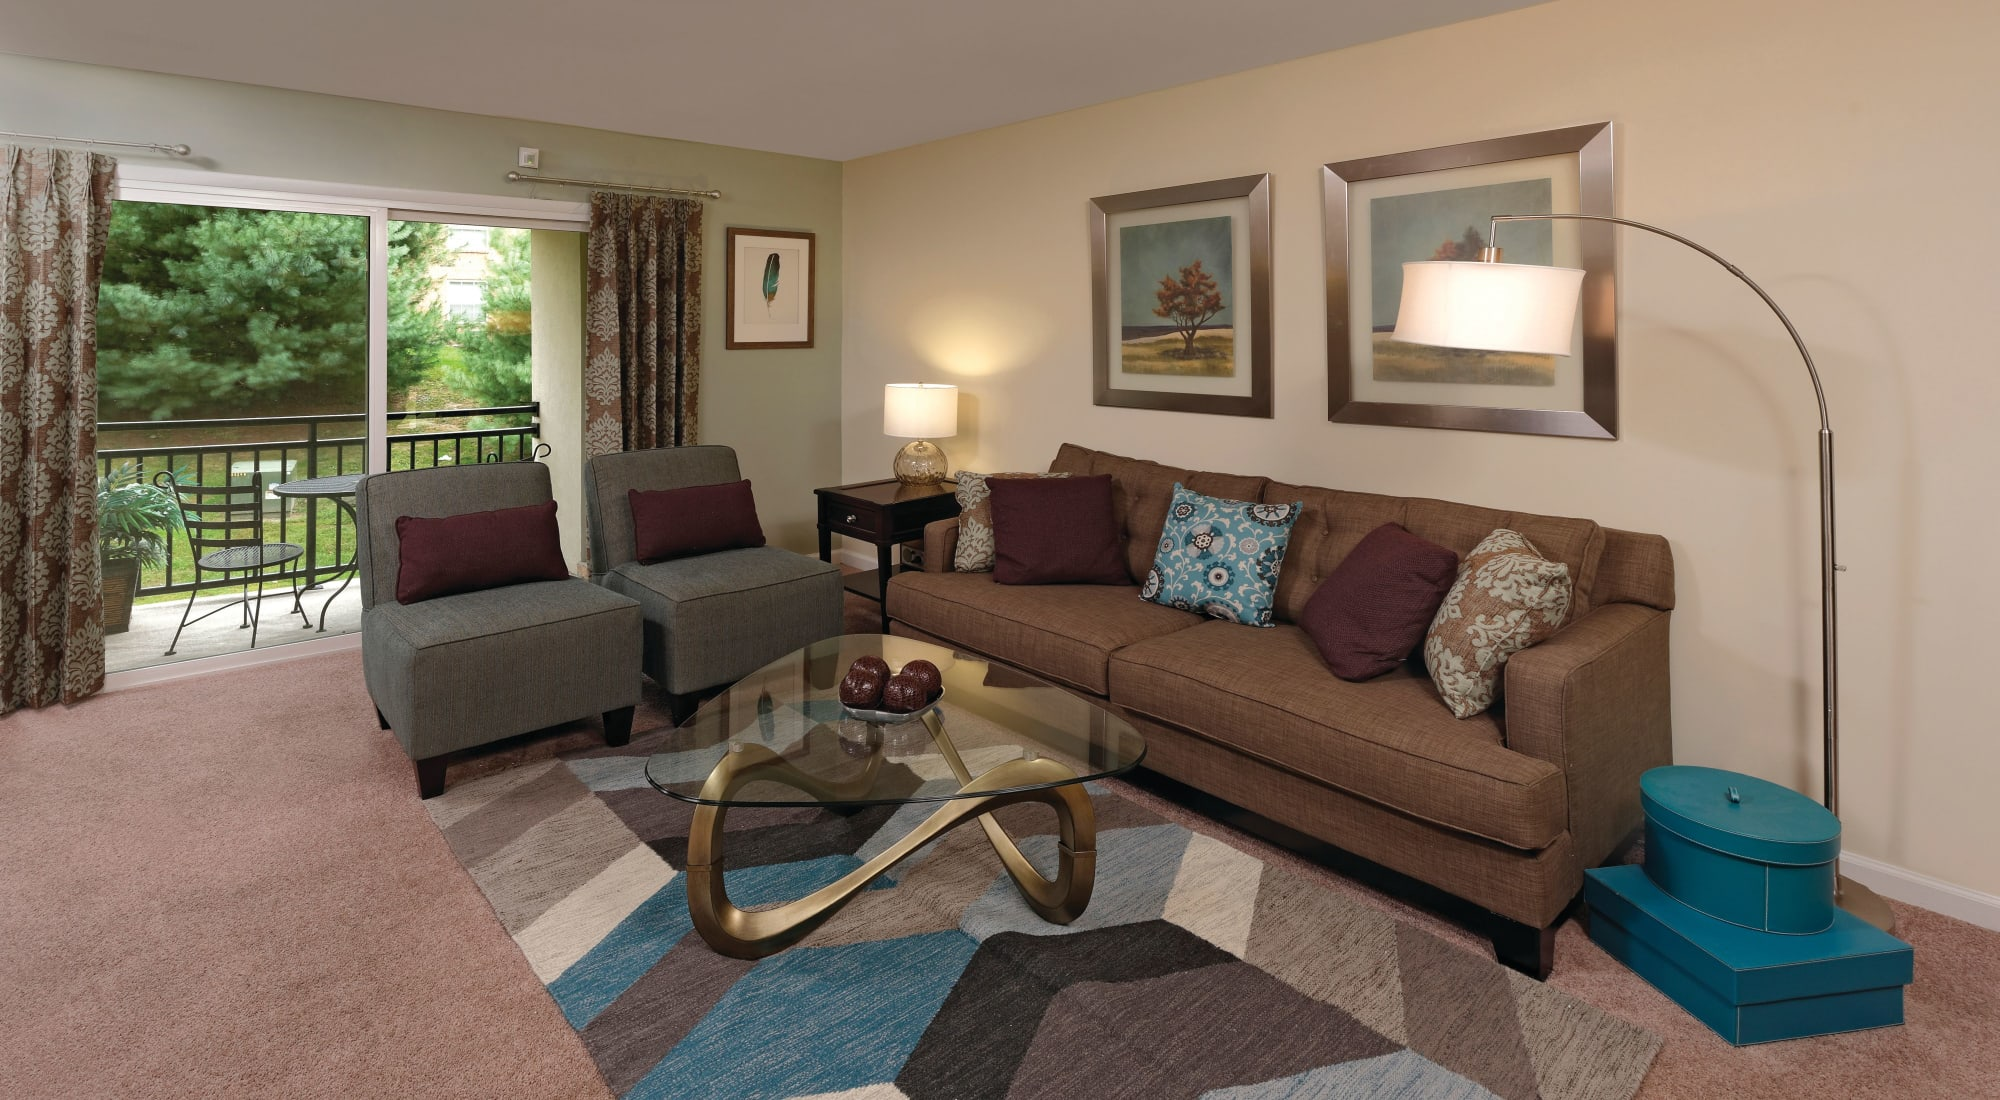 Floor plans at Howard Crossing in Ellicott City, Maryland